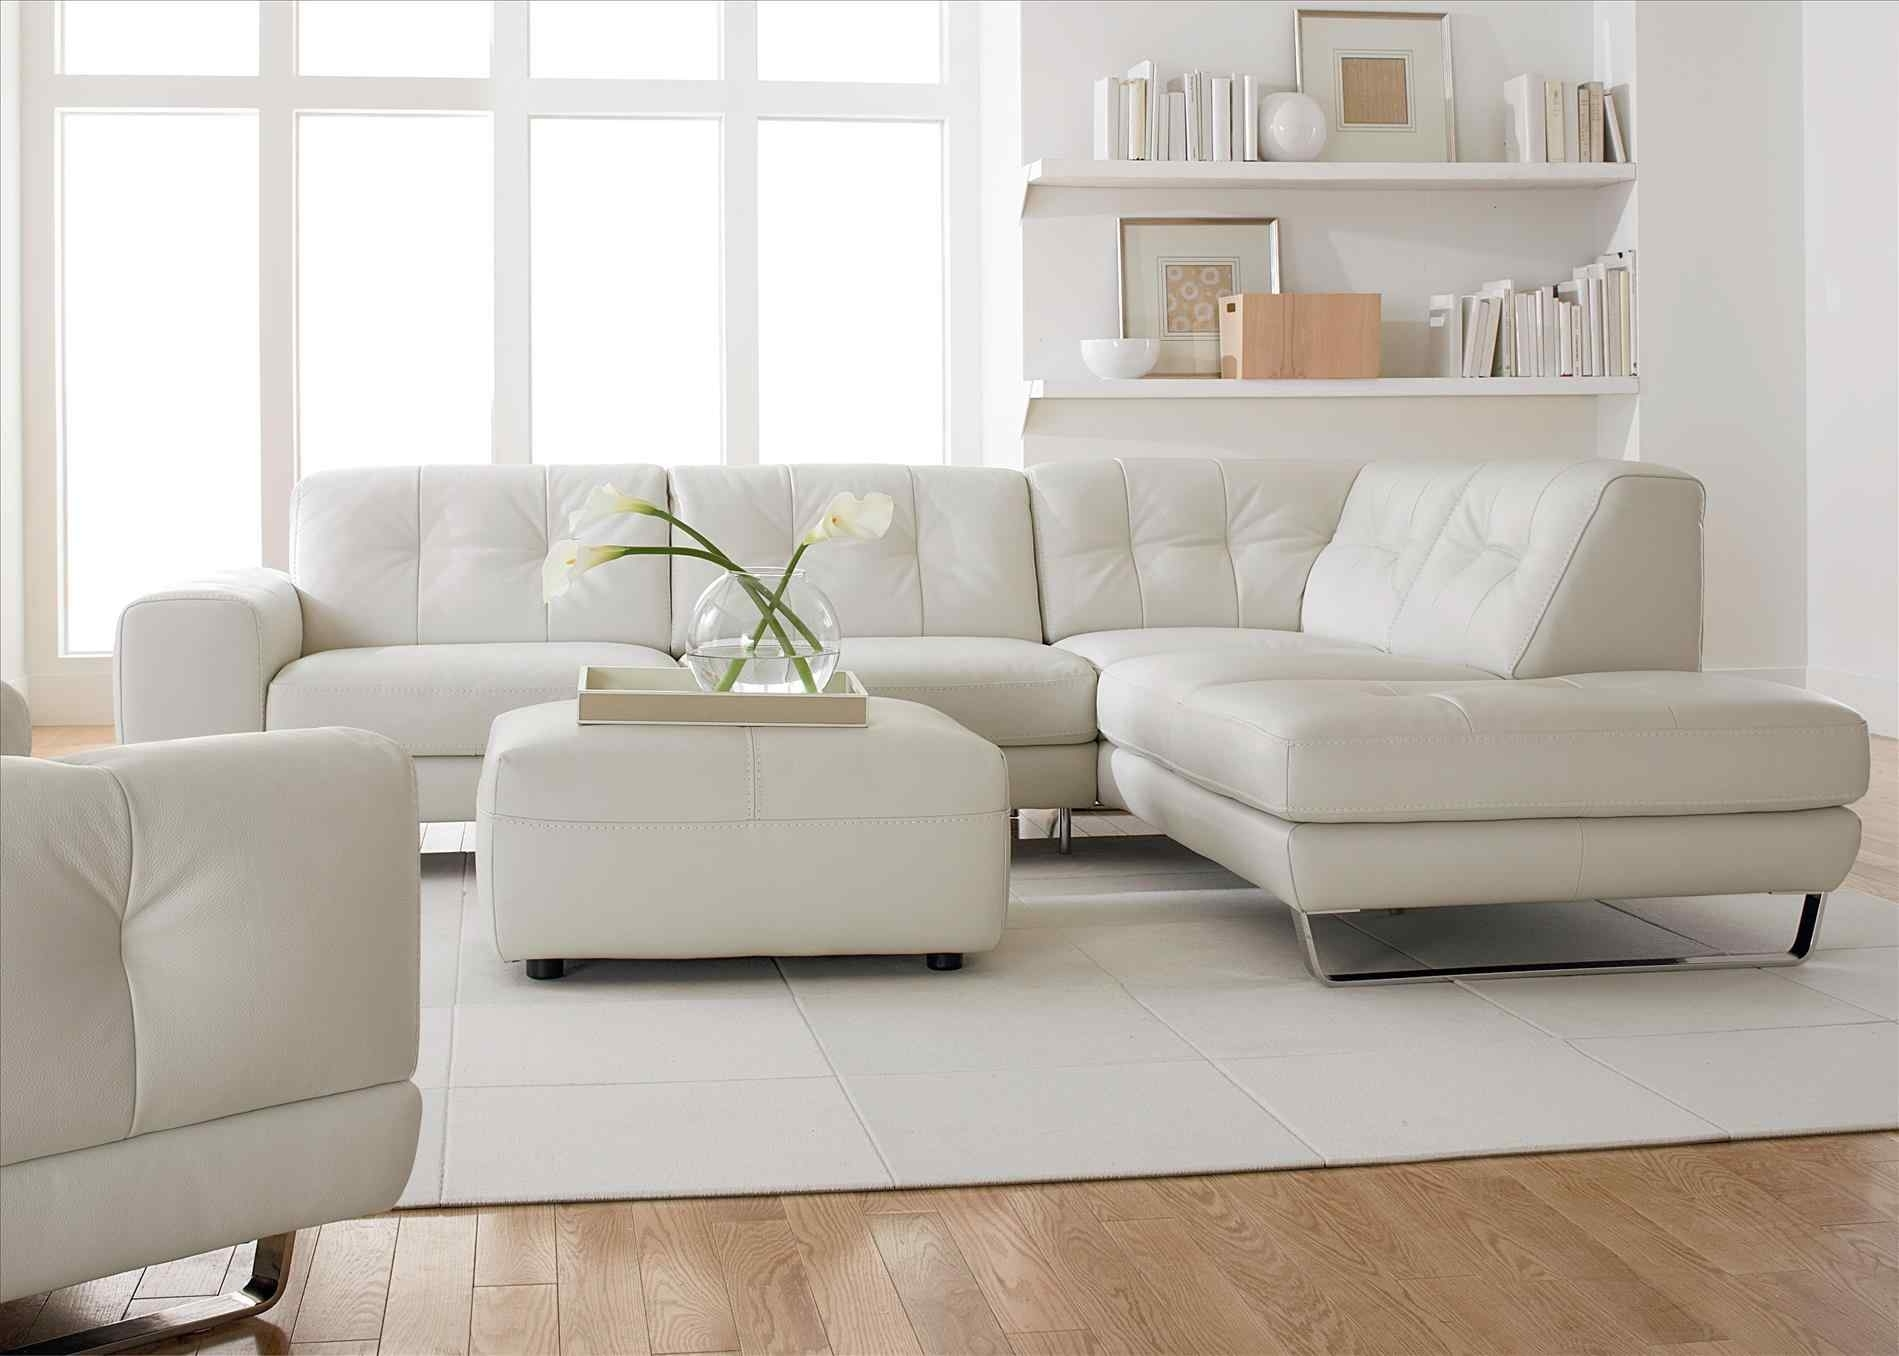 Off White Leather Sofa And Loveseat - Nrhcares intended for Off White Leather Sofas